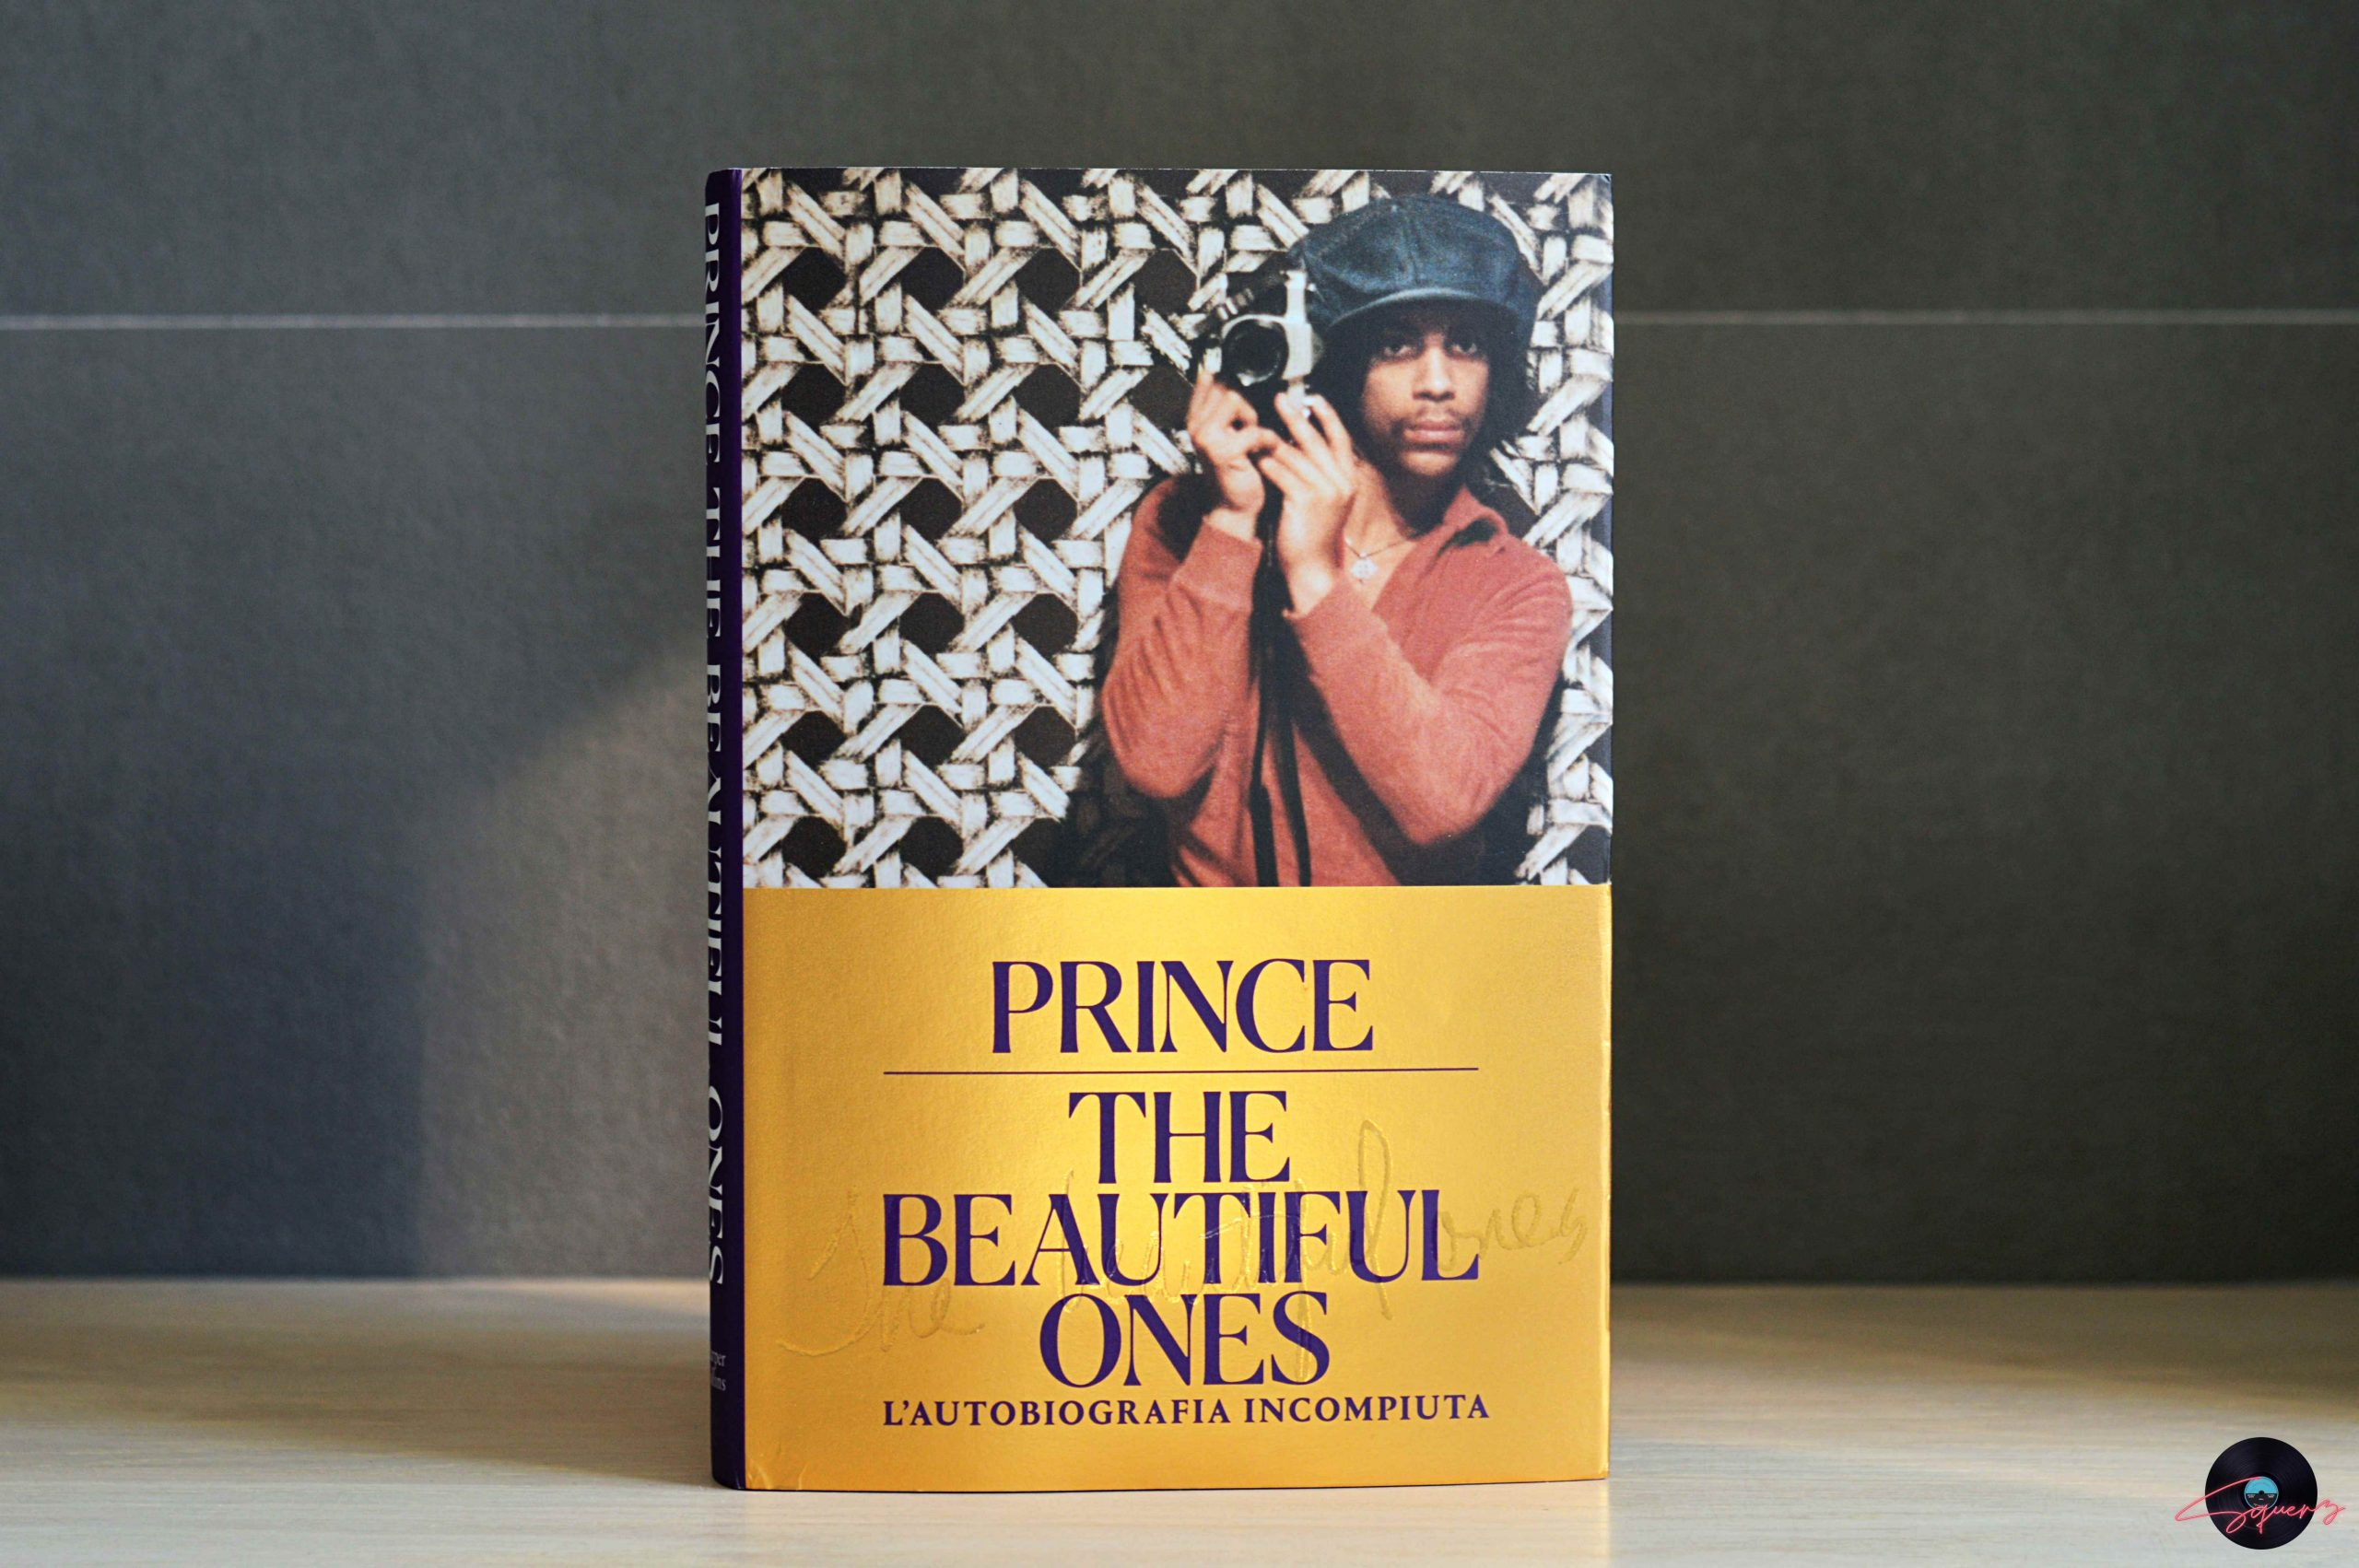 Prince - The Beautiful Ones libro